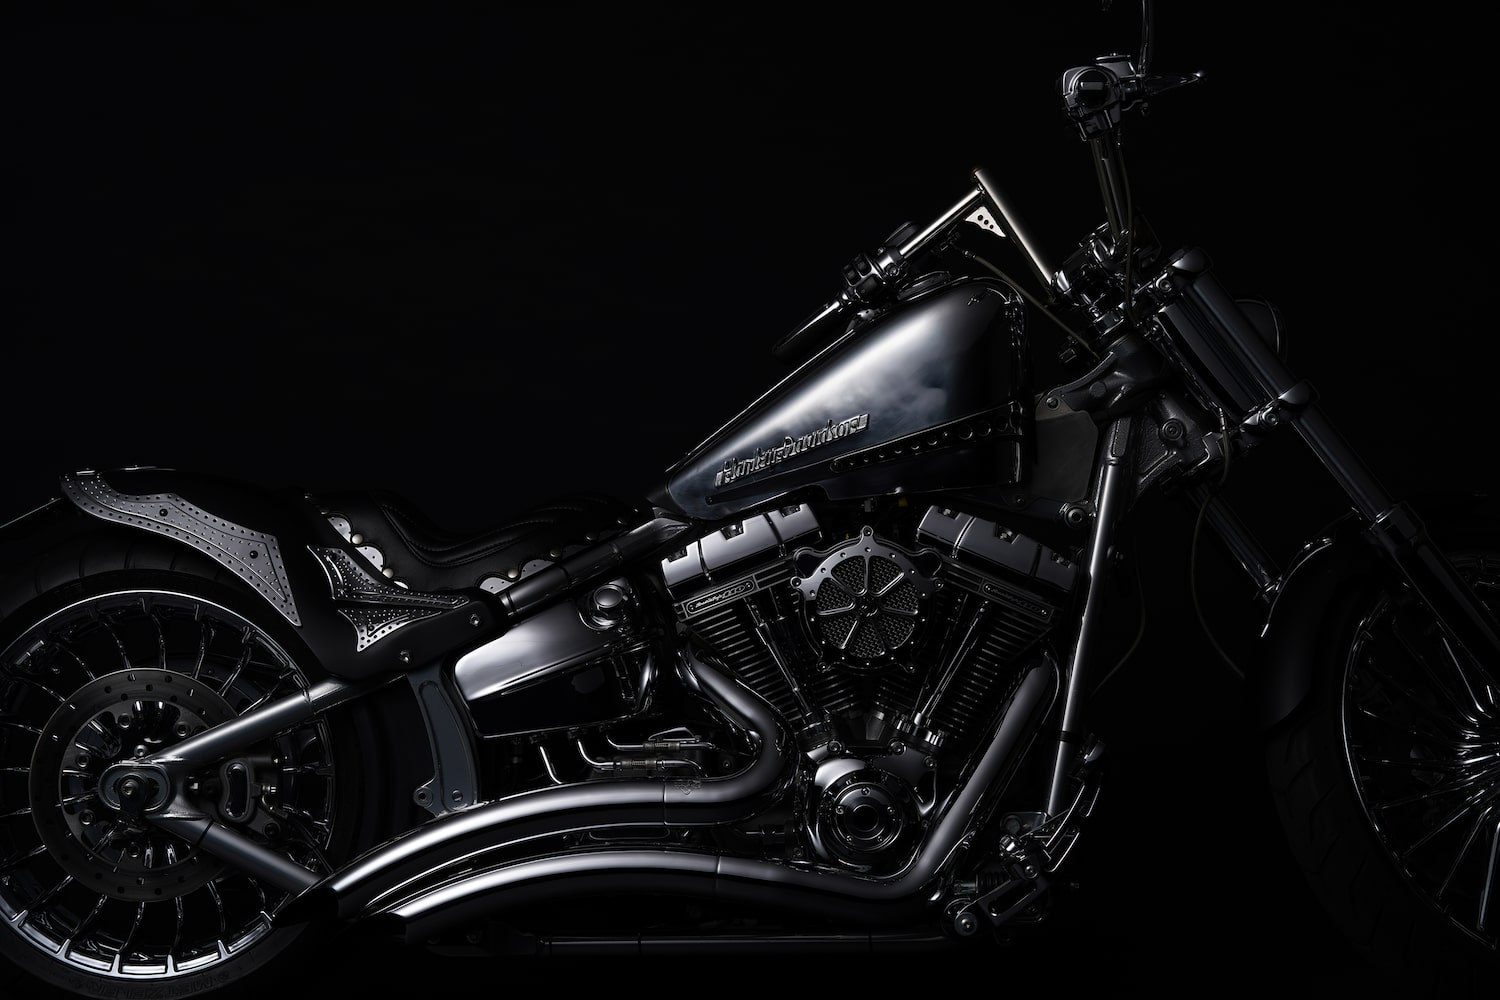 black-motorcycle-mid-shot-alpha-7RIV